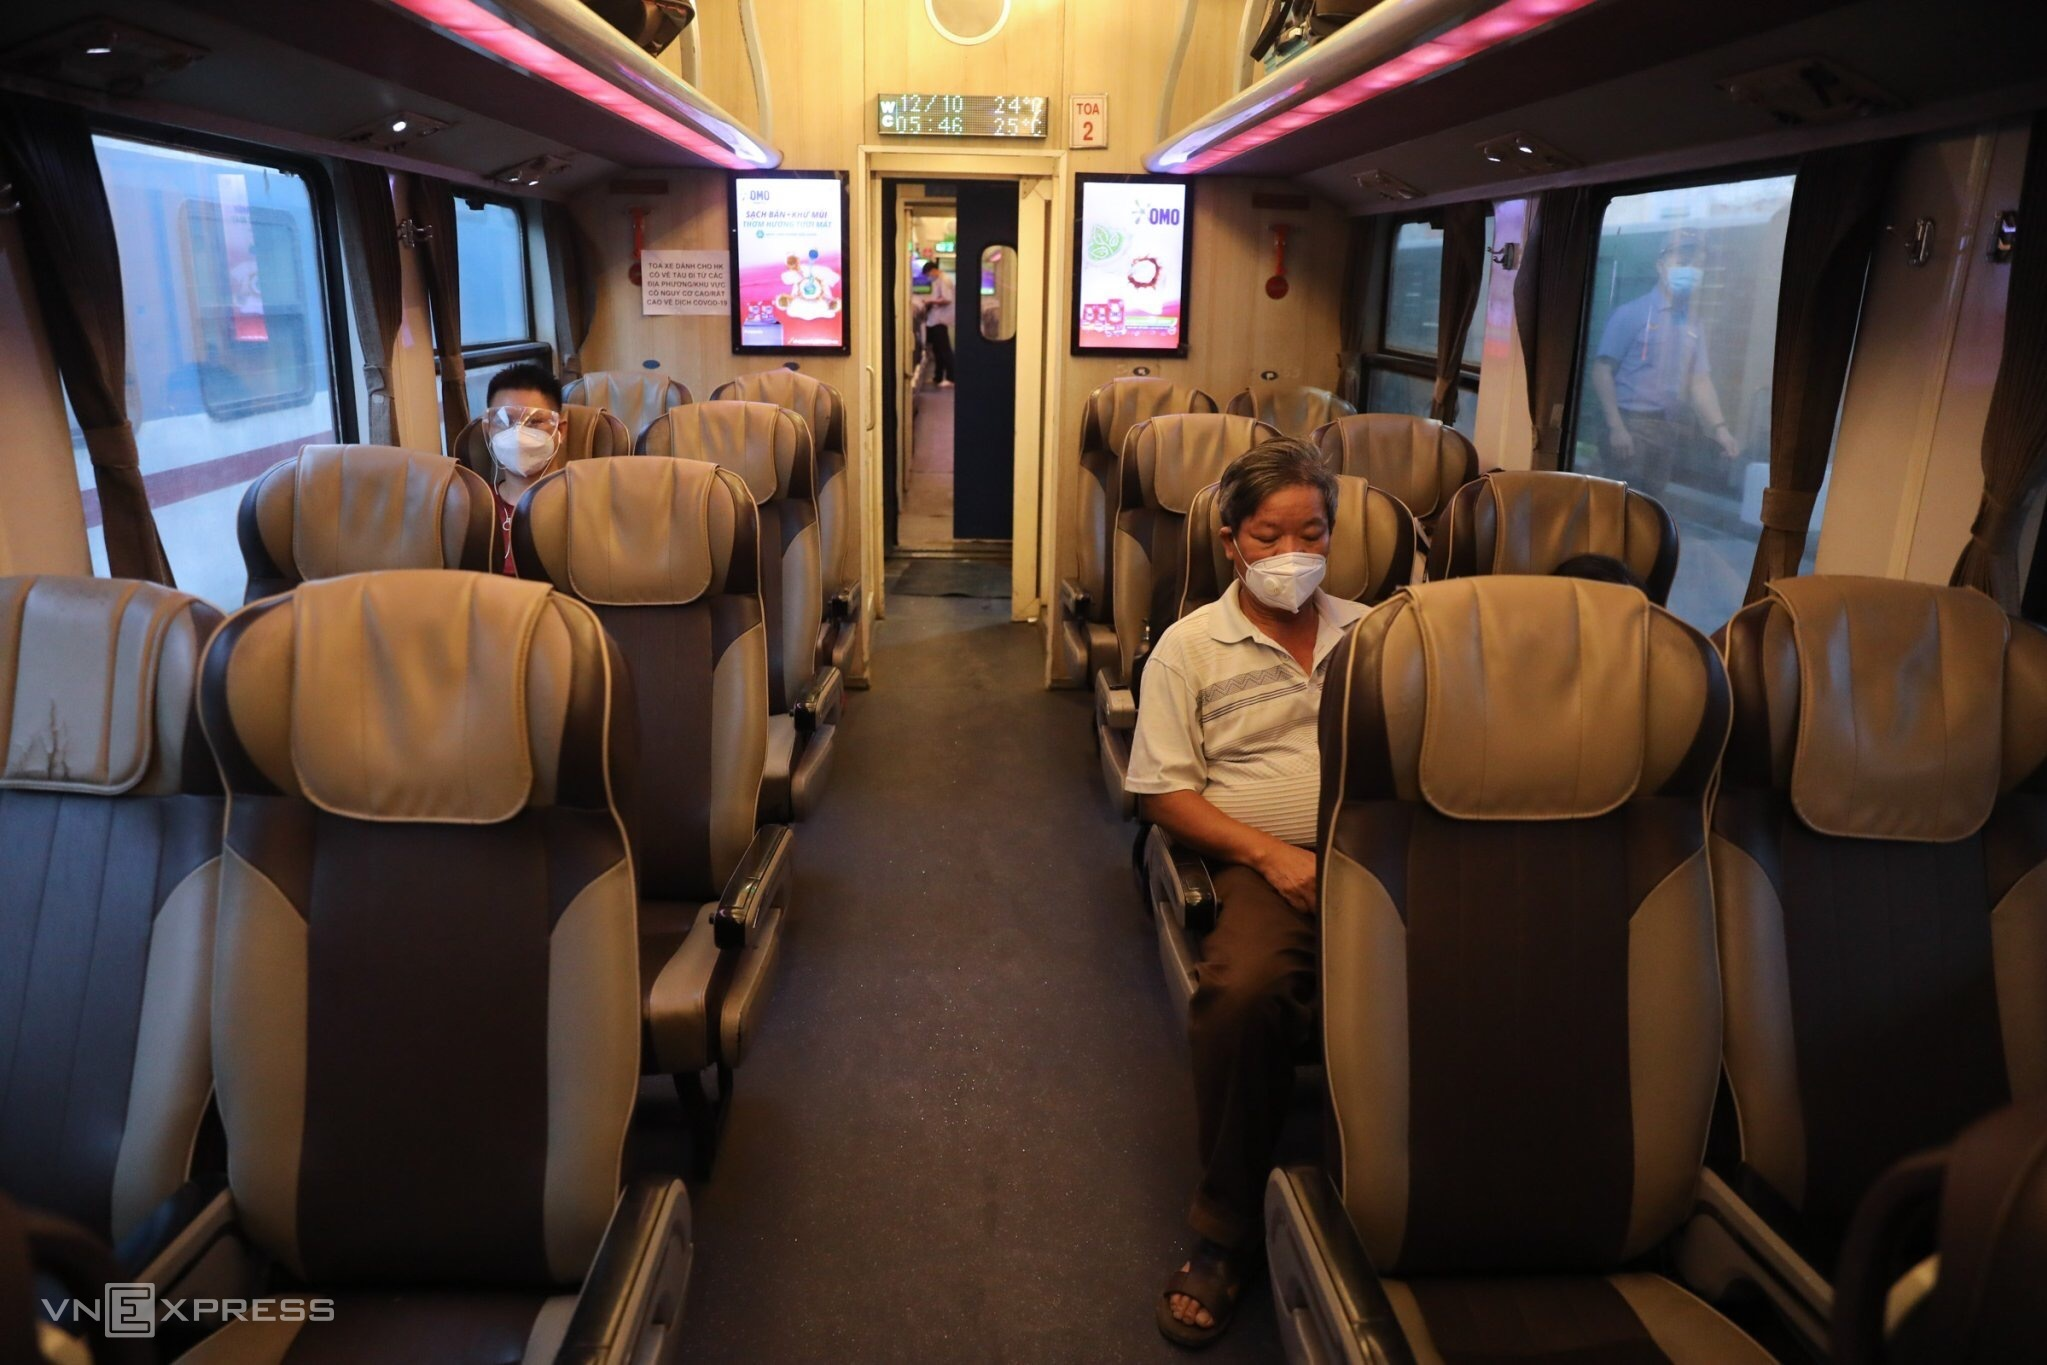 North-South trains get going on new normal tracks